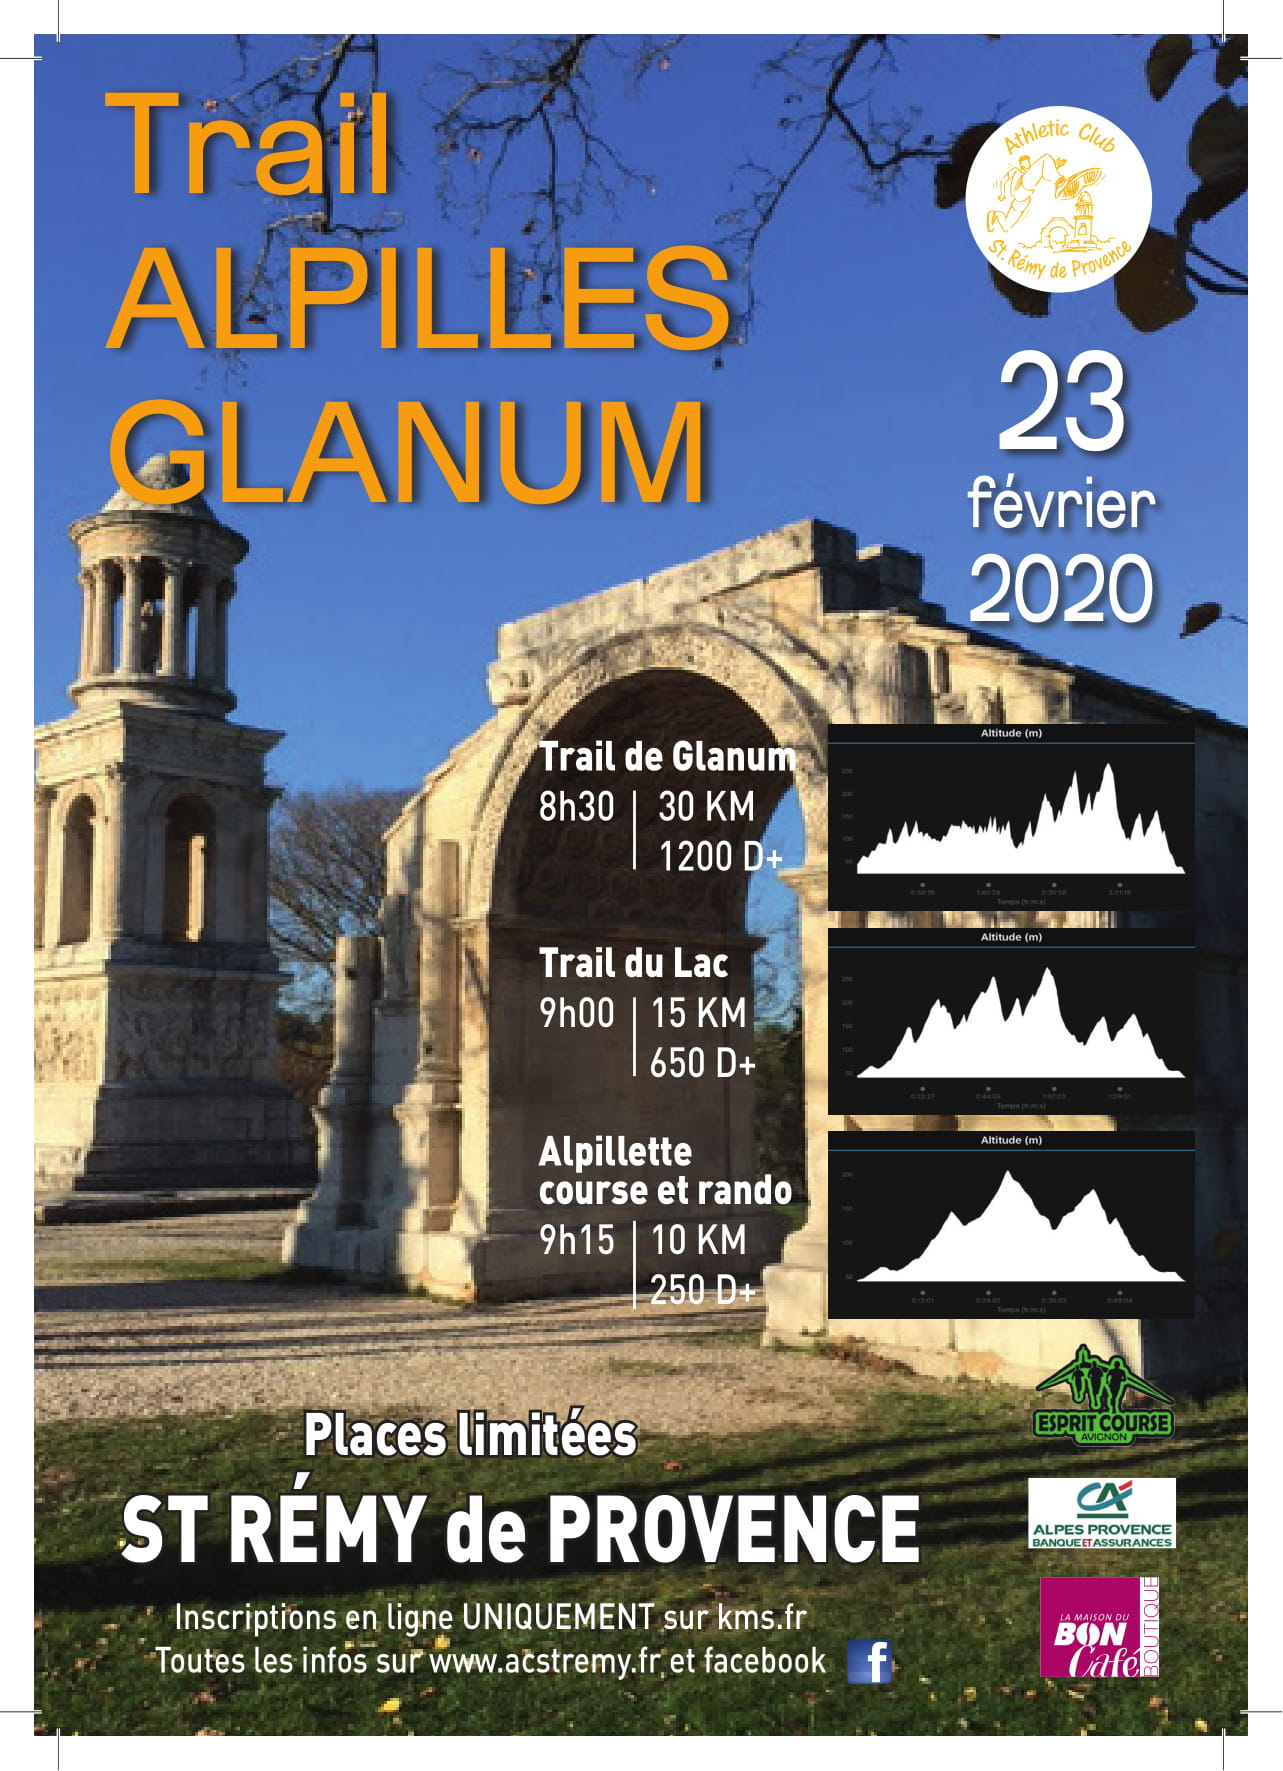 ALPILLETTE 10KM COURSE